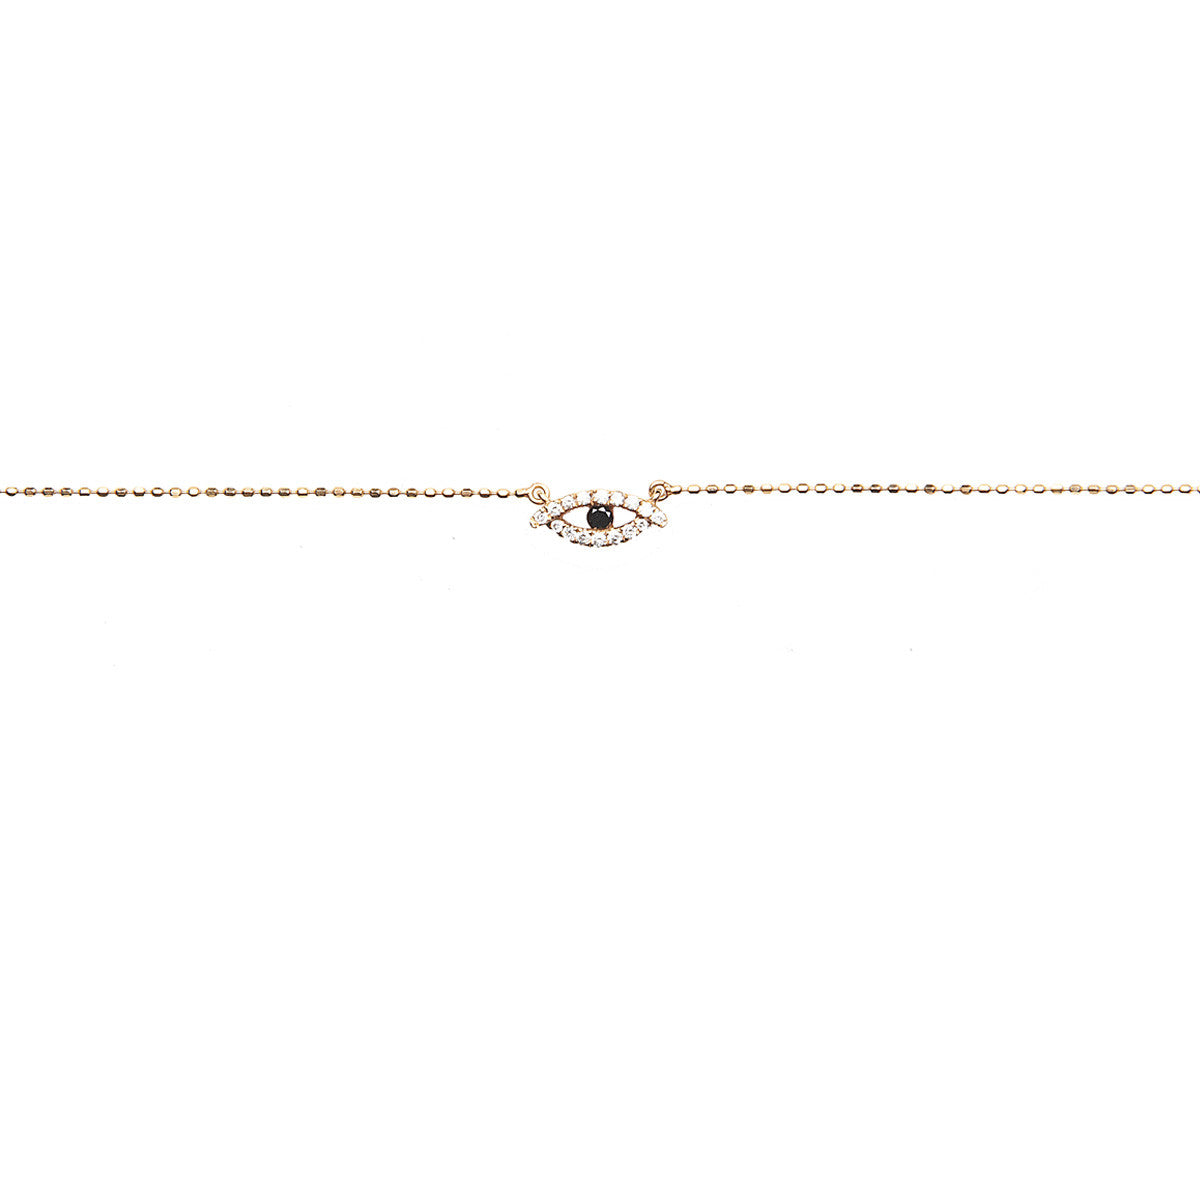 Diane Kordas Jewellery Eye Necklace 18kt gold